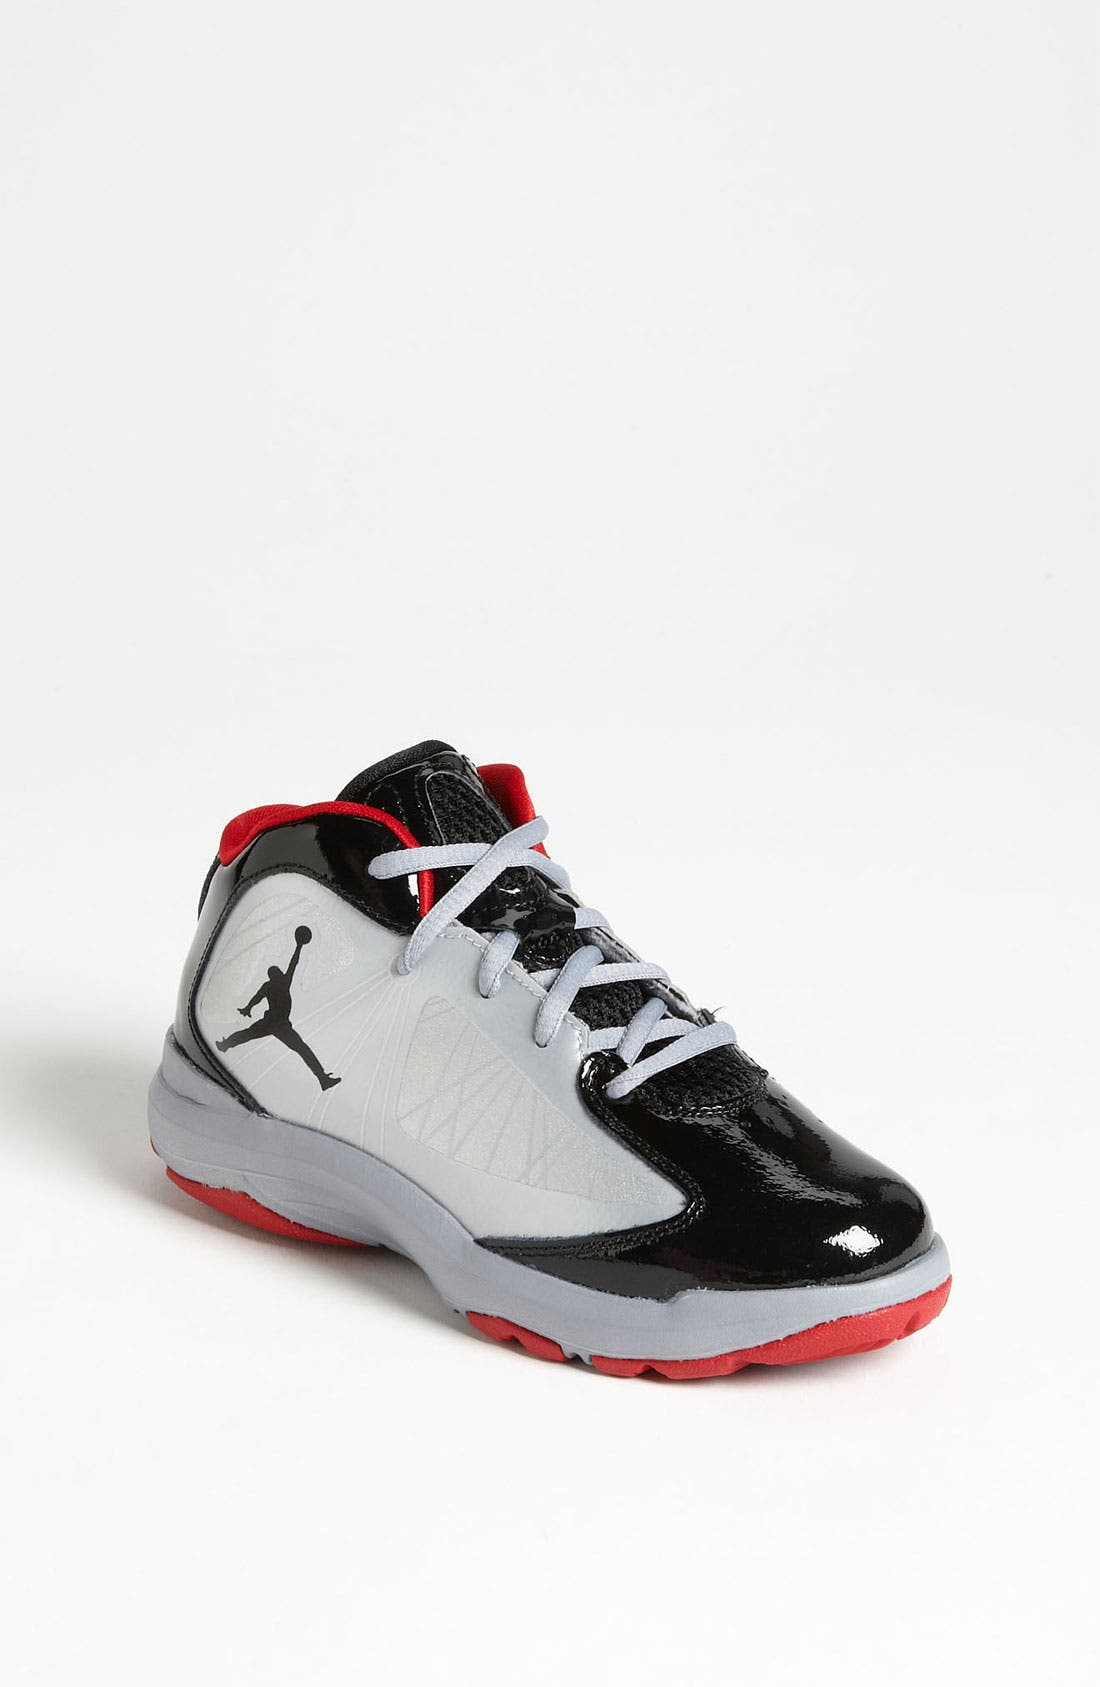 Alternate Image 1 Selected - Nike 'Jordan Aero Flight' Sneaker (Toddler & Little Kid)